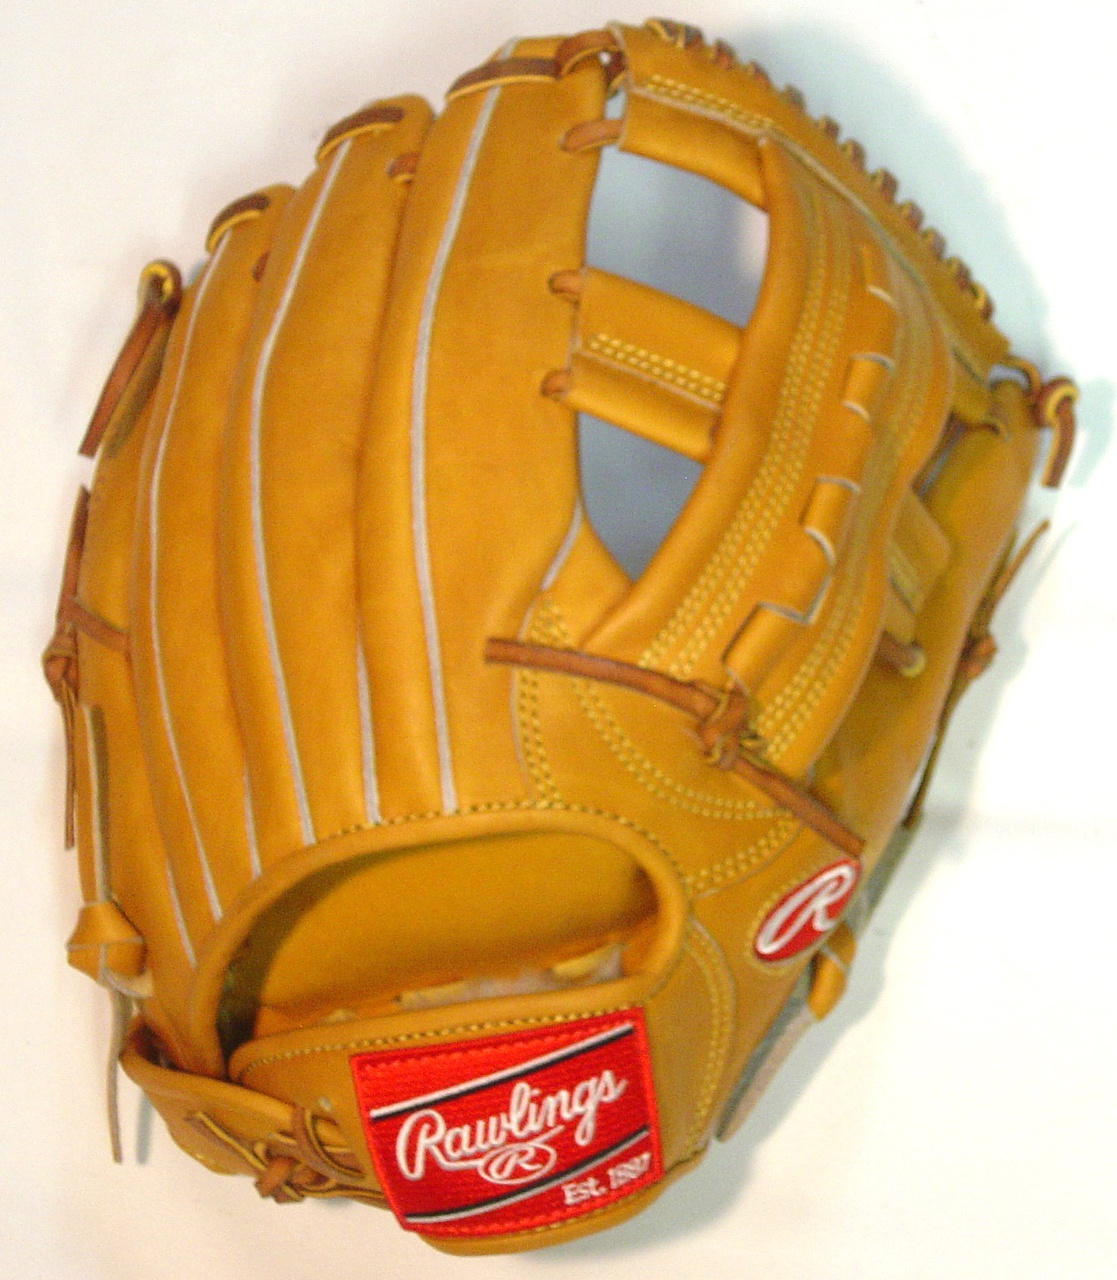 2018 Model Found Here Rawlings Ballgloves.com exclusive PRORV23 worn by many great third baseman including Robin Ventura. Made with Japanese tanned Heart of Hide leather. Stiff with break in needed. 12.25 inch pattern and Single Post I Web makes this glove a excellent third base mitt. Deer tanned cowhide inside lining and no palm pad. Made in the Phillipines. This Rawlings baseball glove is a pro model with pro performance. World renowed Heart of the Hide leather for unmatched durability. Crafted from authentic Rawlings Pro patterns. Produced by the world finest Rawlings glove technicians. Soft full grain leather palm and finger back lining provide exemplary comfort. USA tanned leather lacing for durability. Single Post Open Web and Open Back.